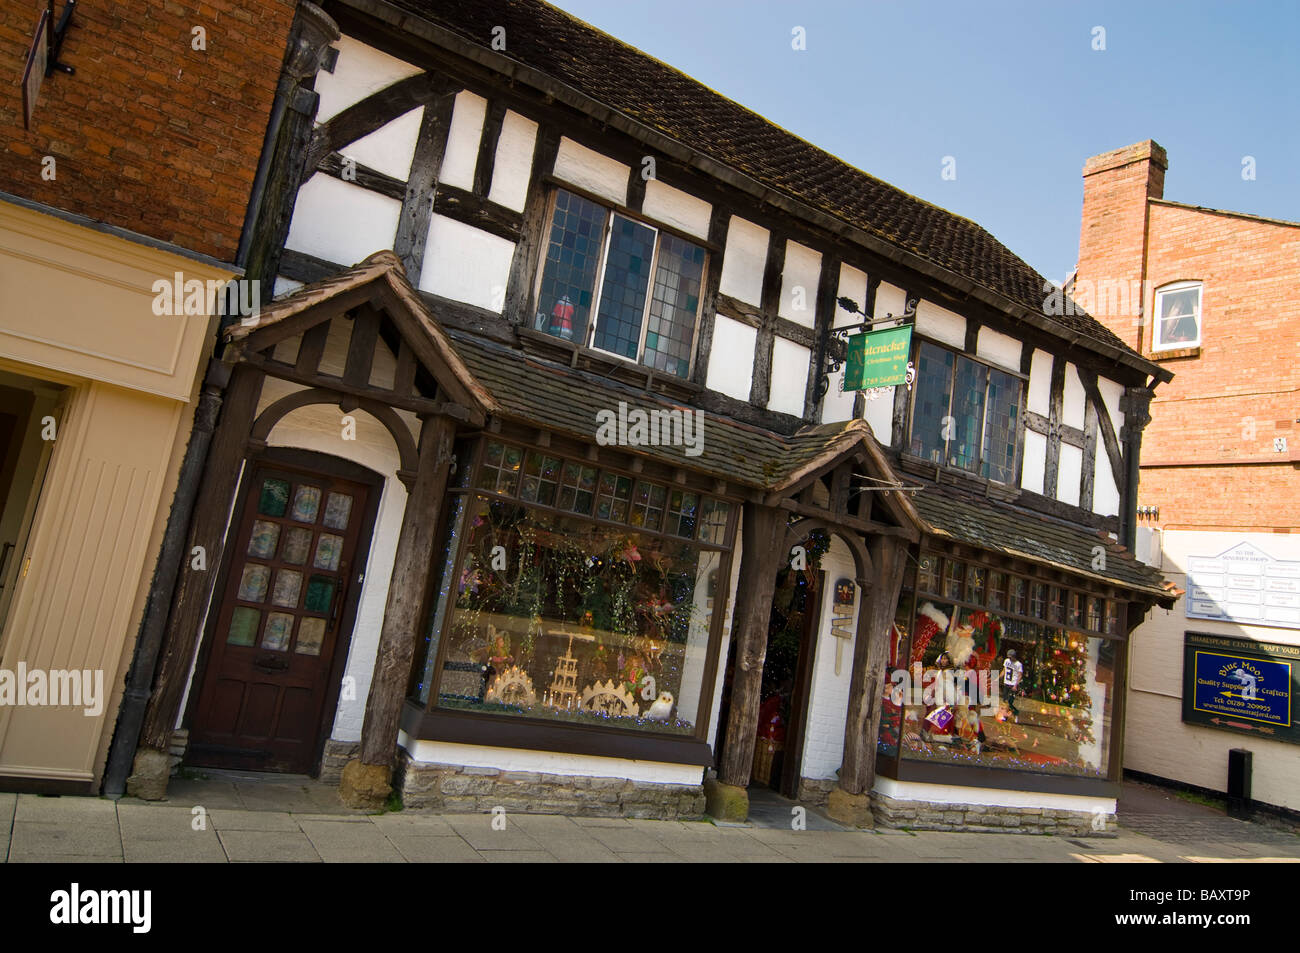 Tudor Facade horizontal wide angle of an old black and white tudor facade of a